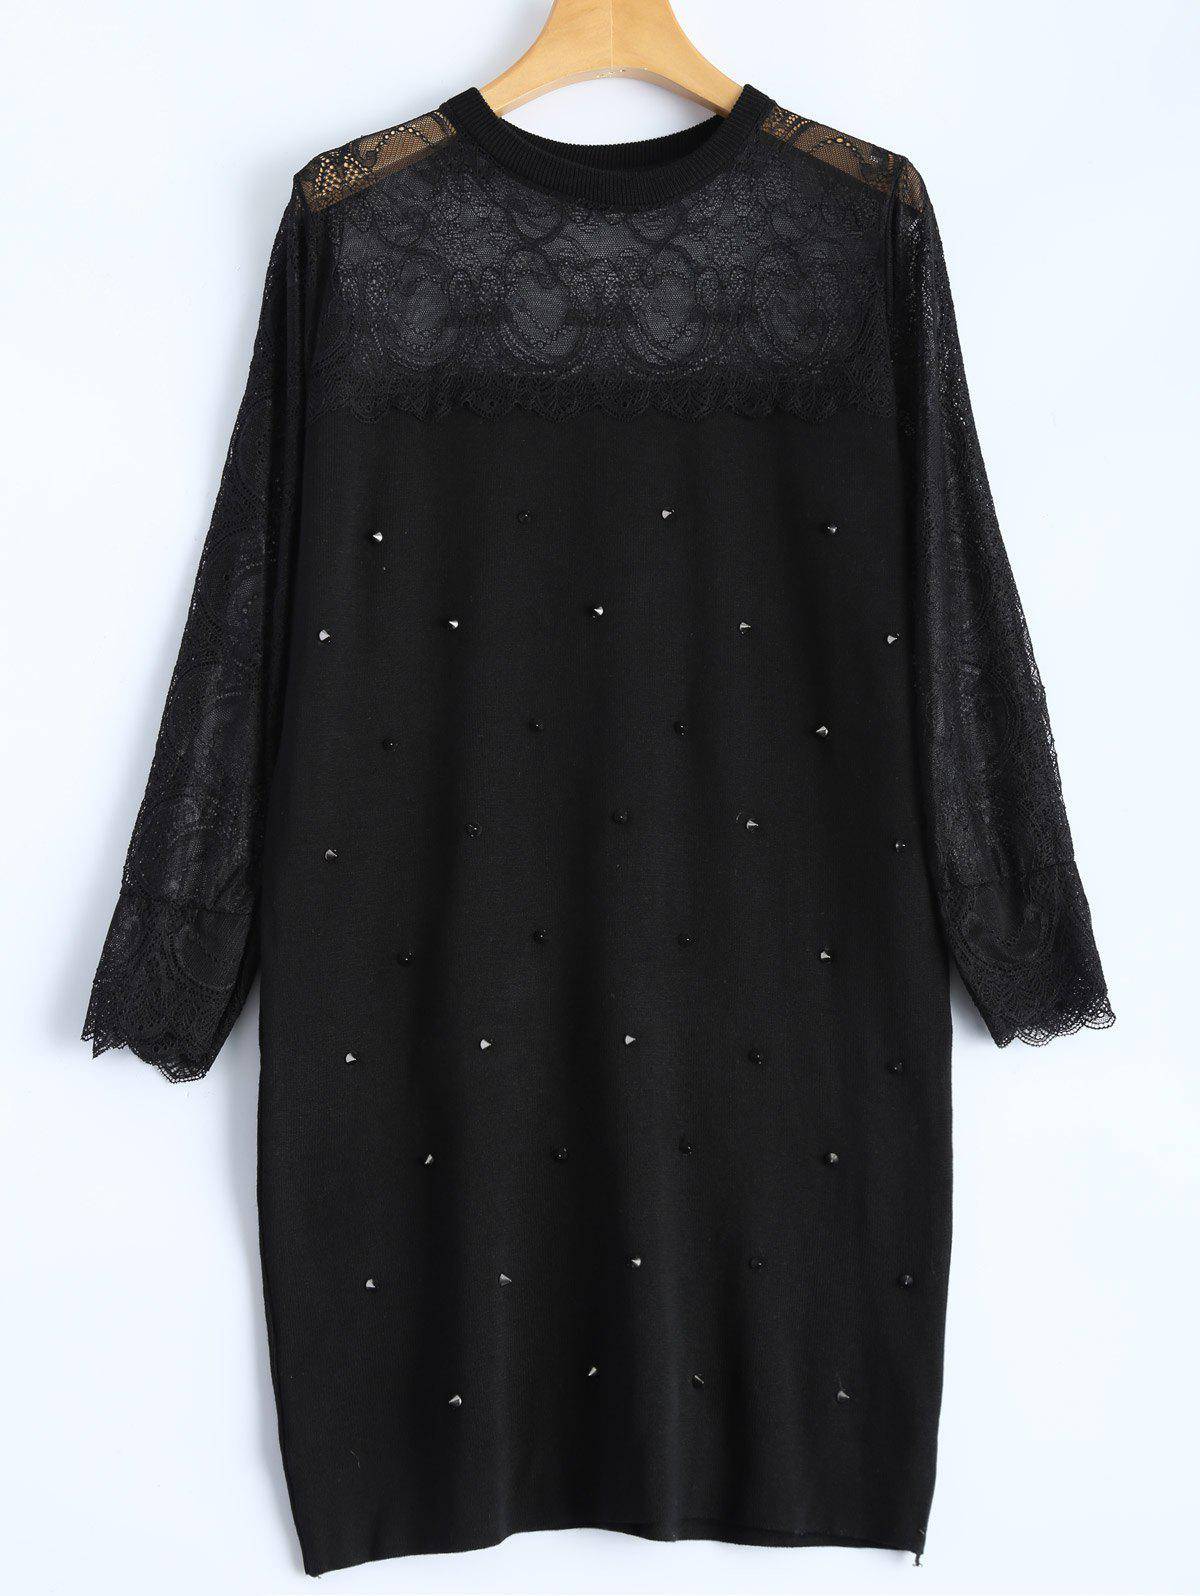 Slim Rivet Lace Insert Knit Dress - BLACK ONE SIZE